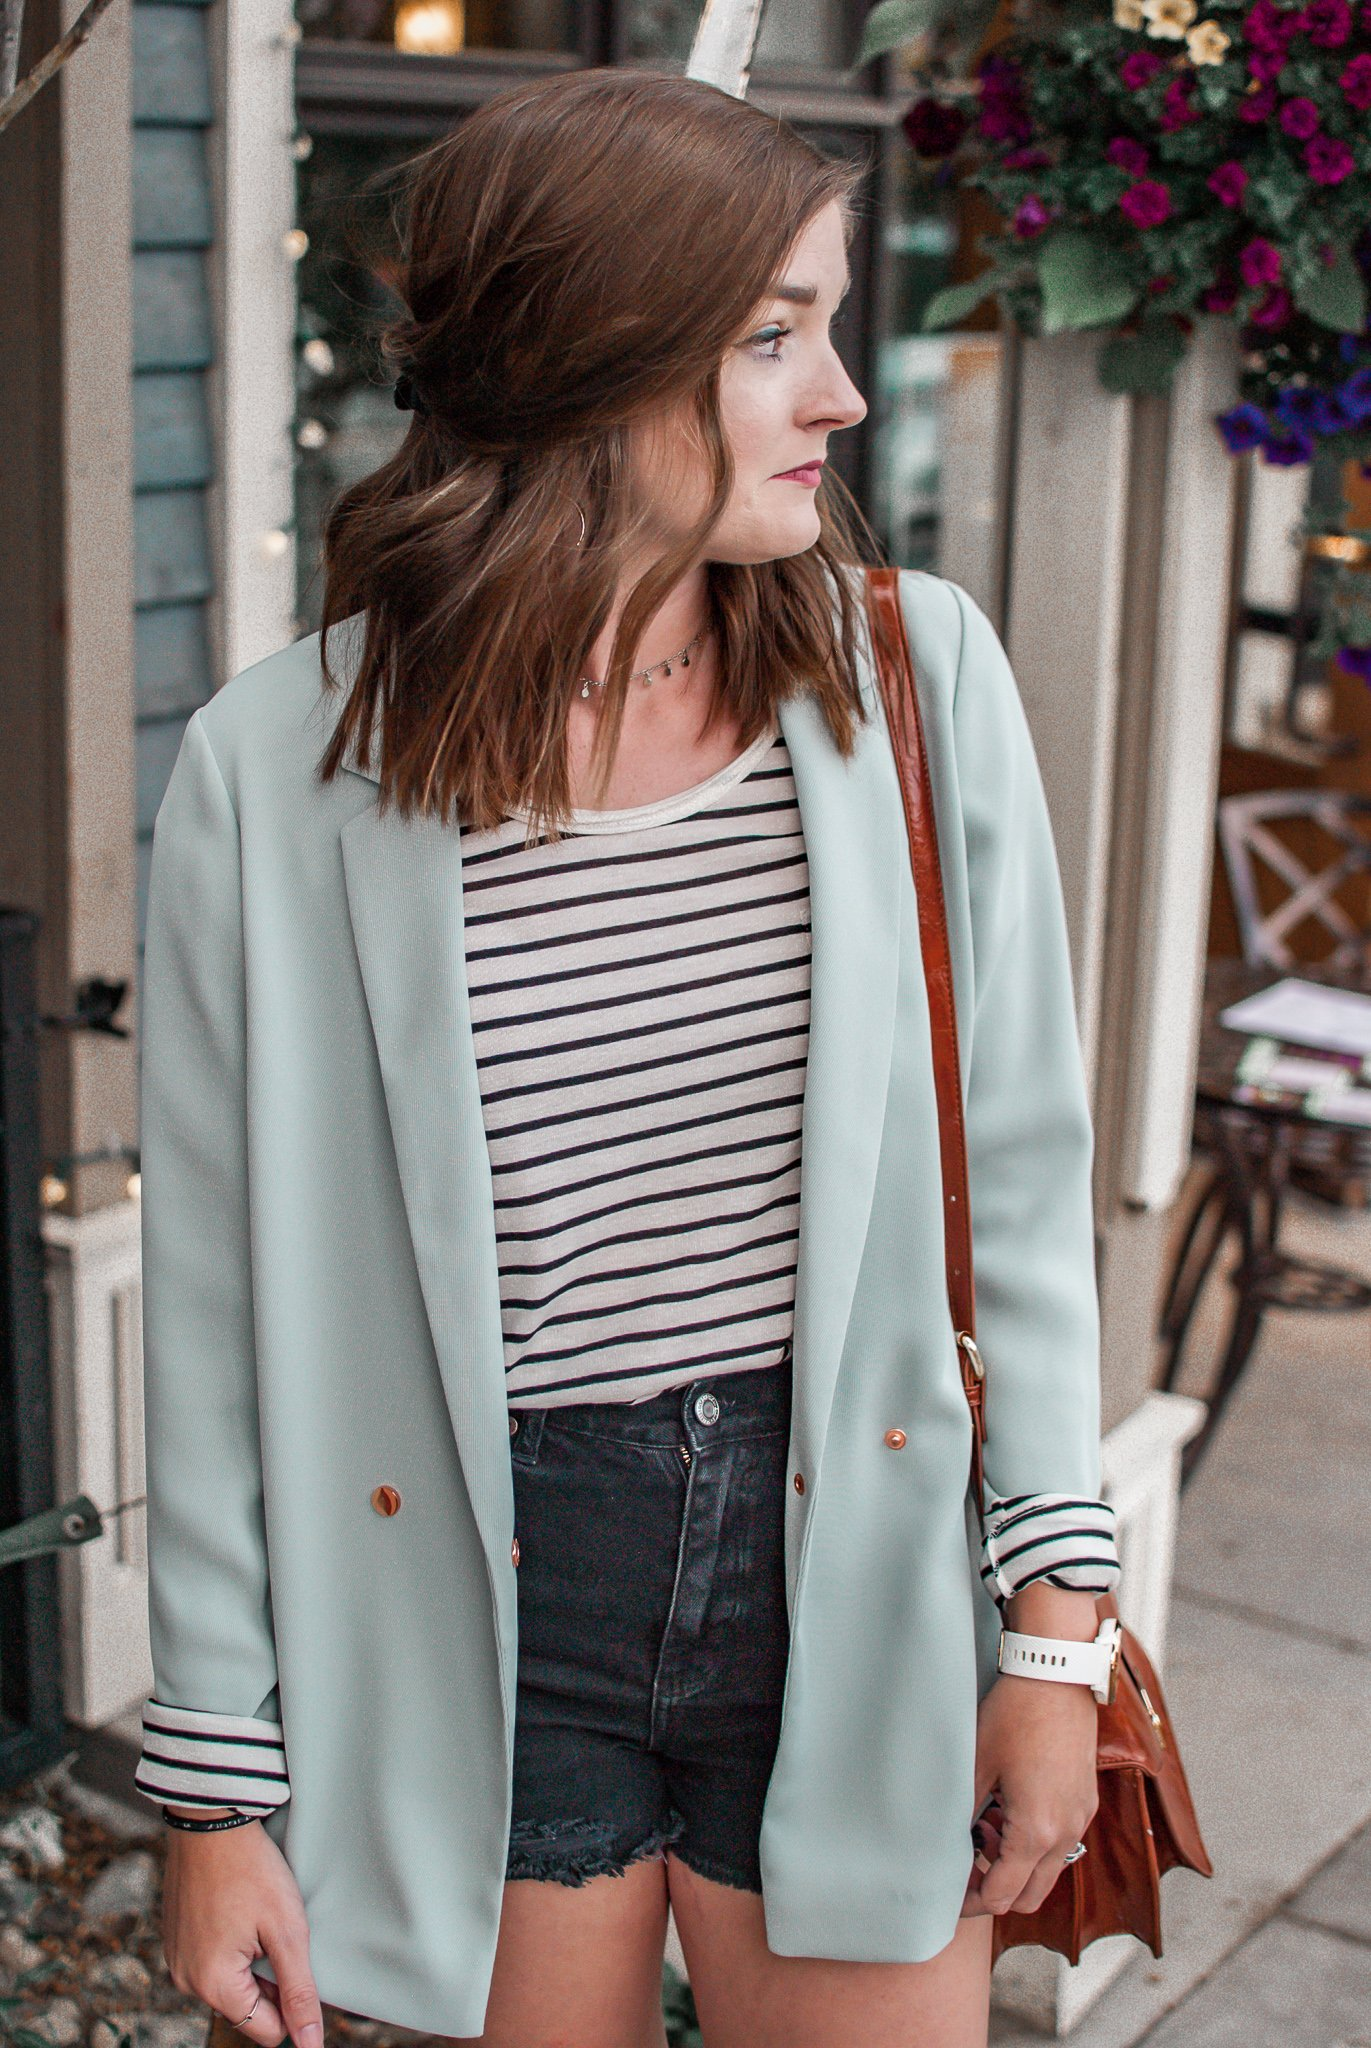 Summer style challenge + my favorite layering piece